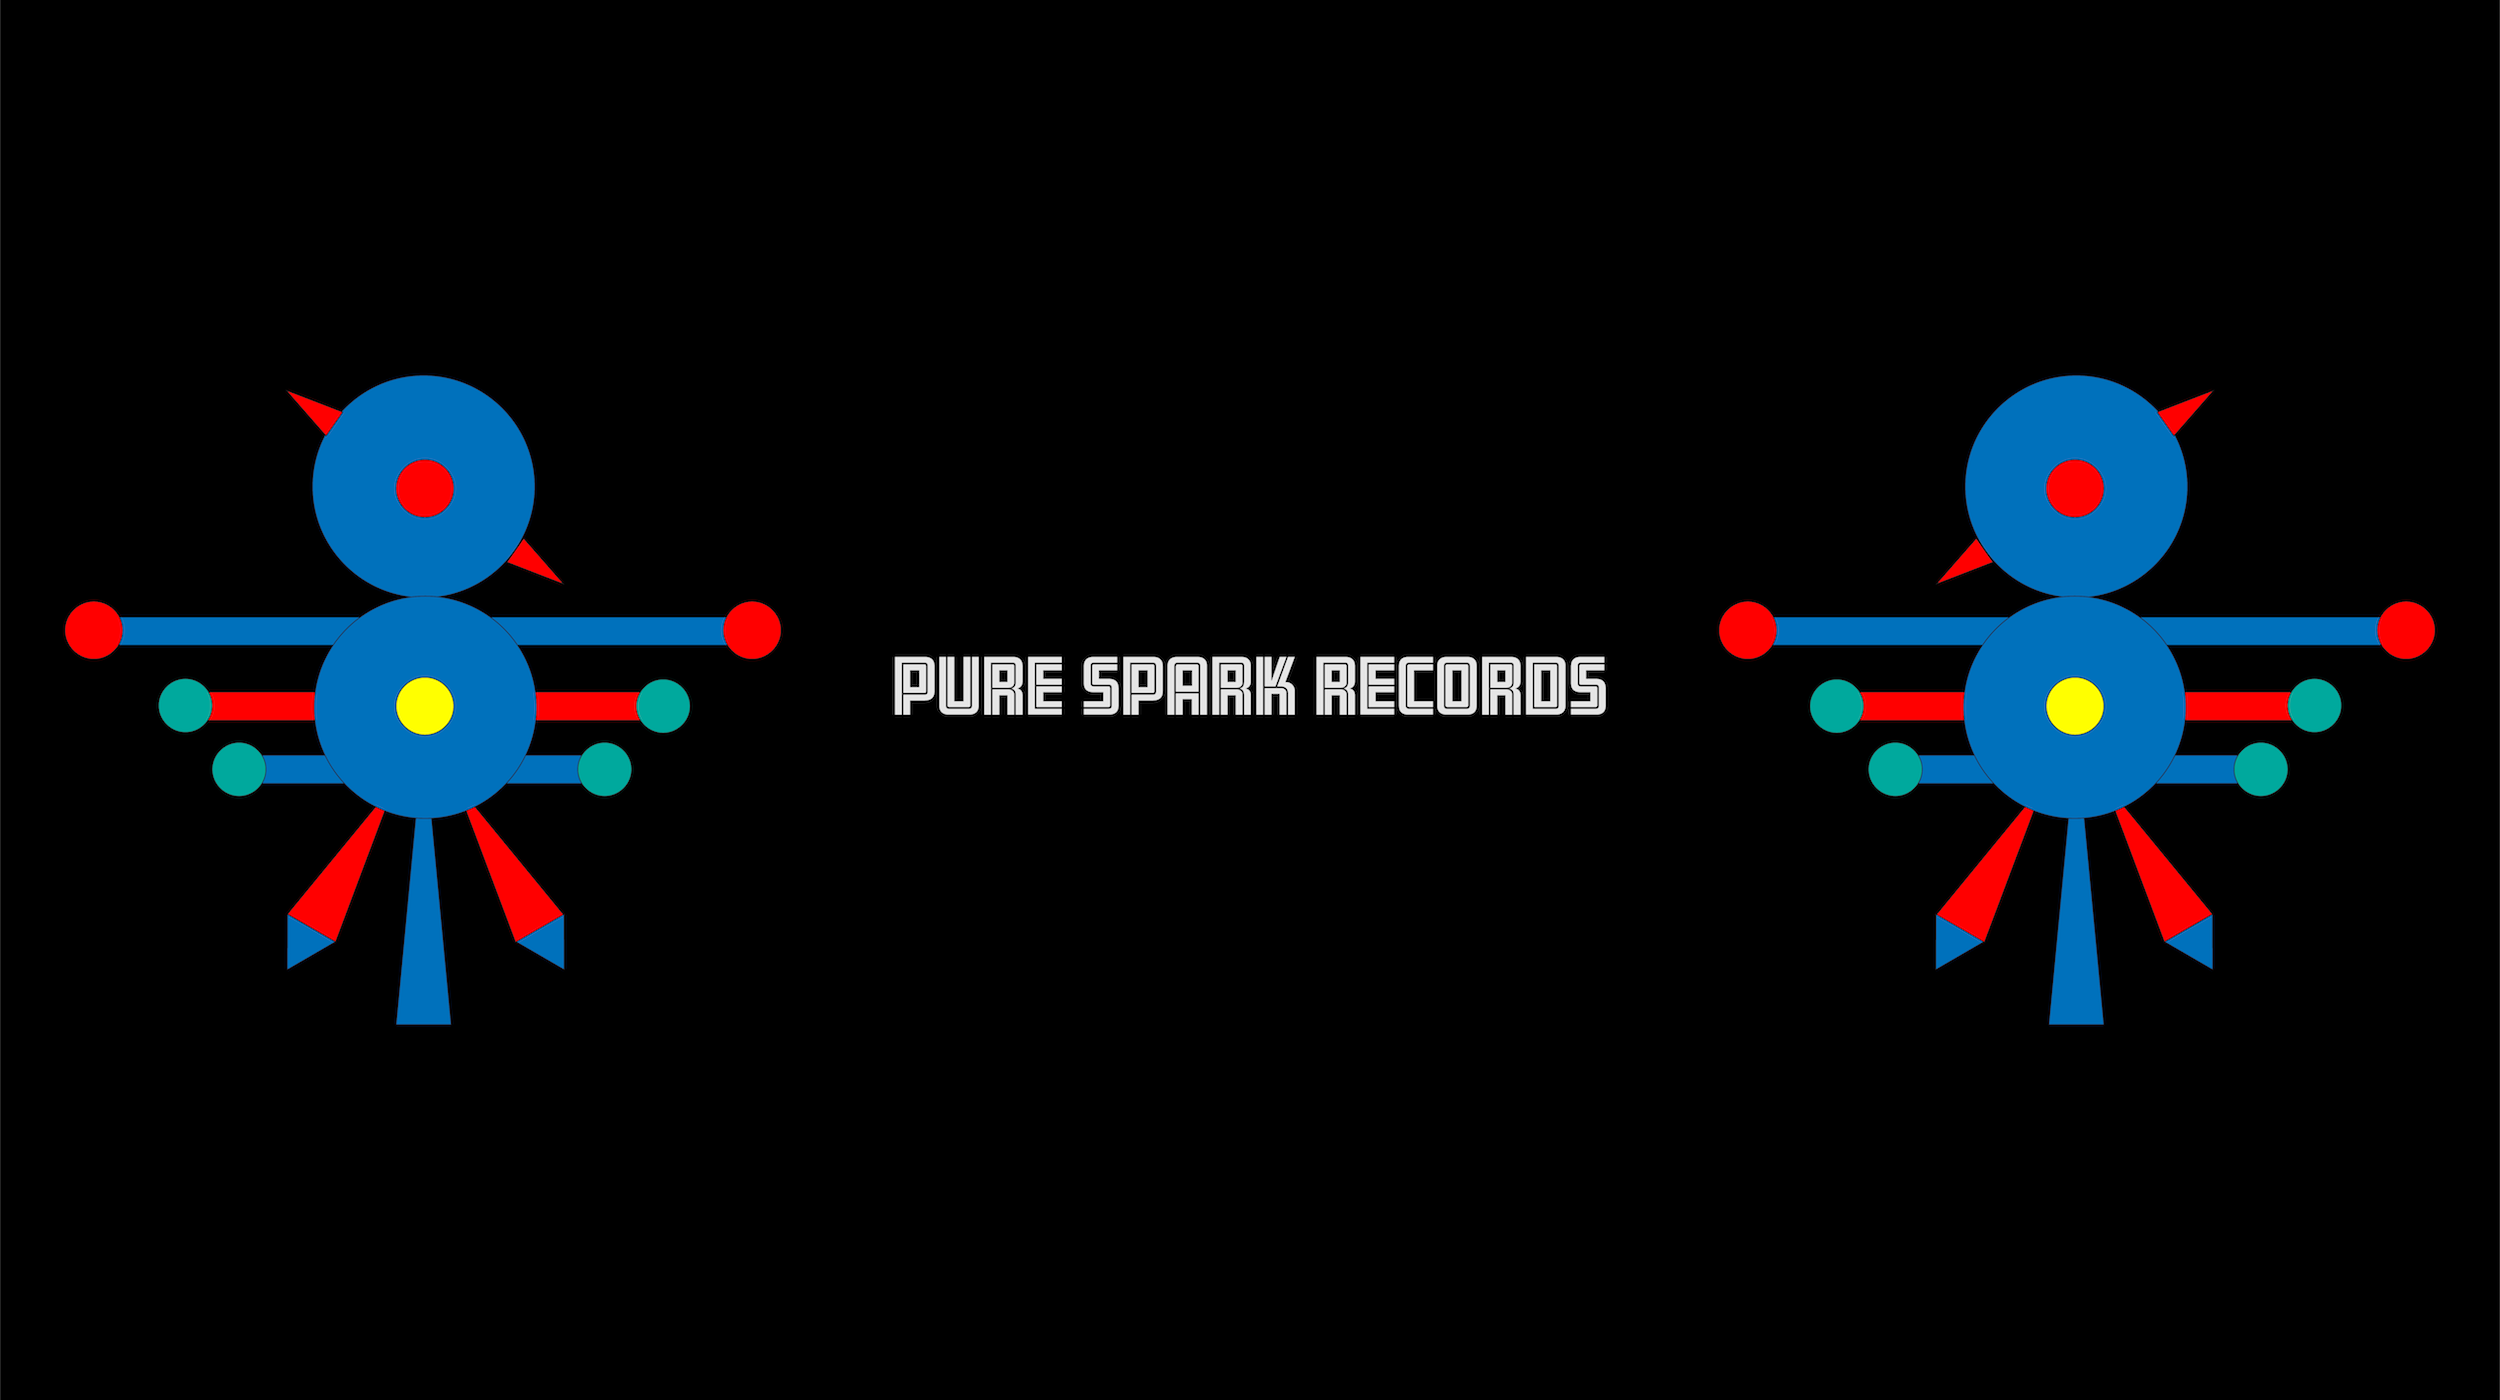 Pure Spark Records